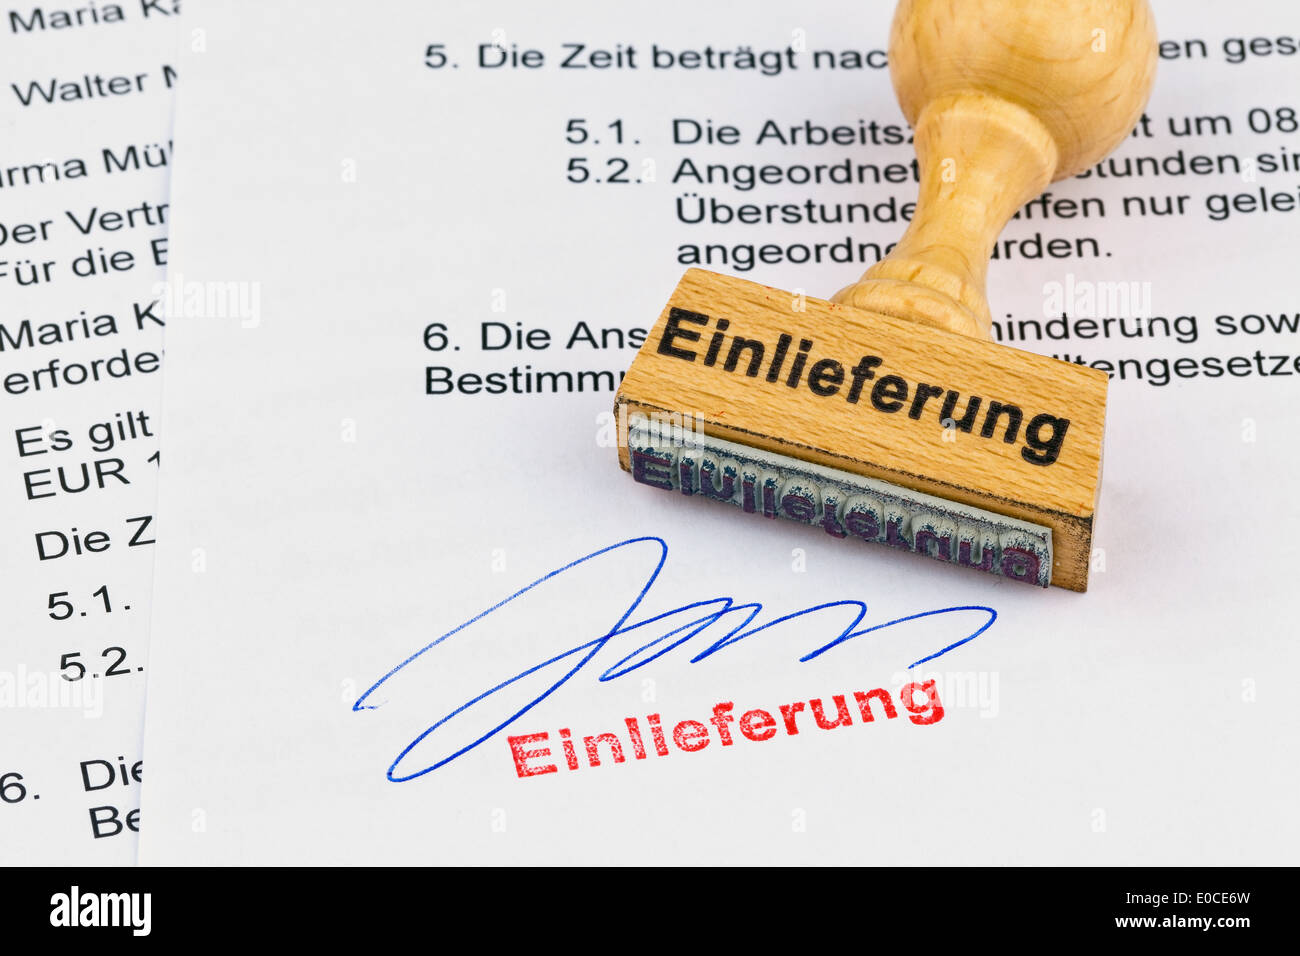 A stamp of wood lies on a document. Label Admission, Ein Stempel aus Holz liegt auf einem Dokument. Aufschrift Einlieferung Stock Photo